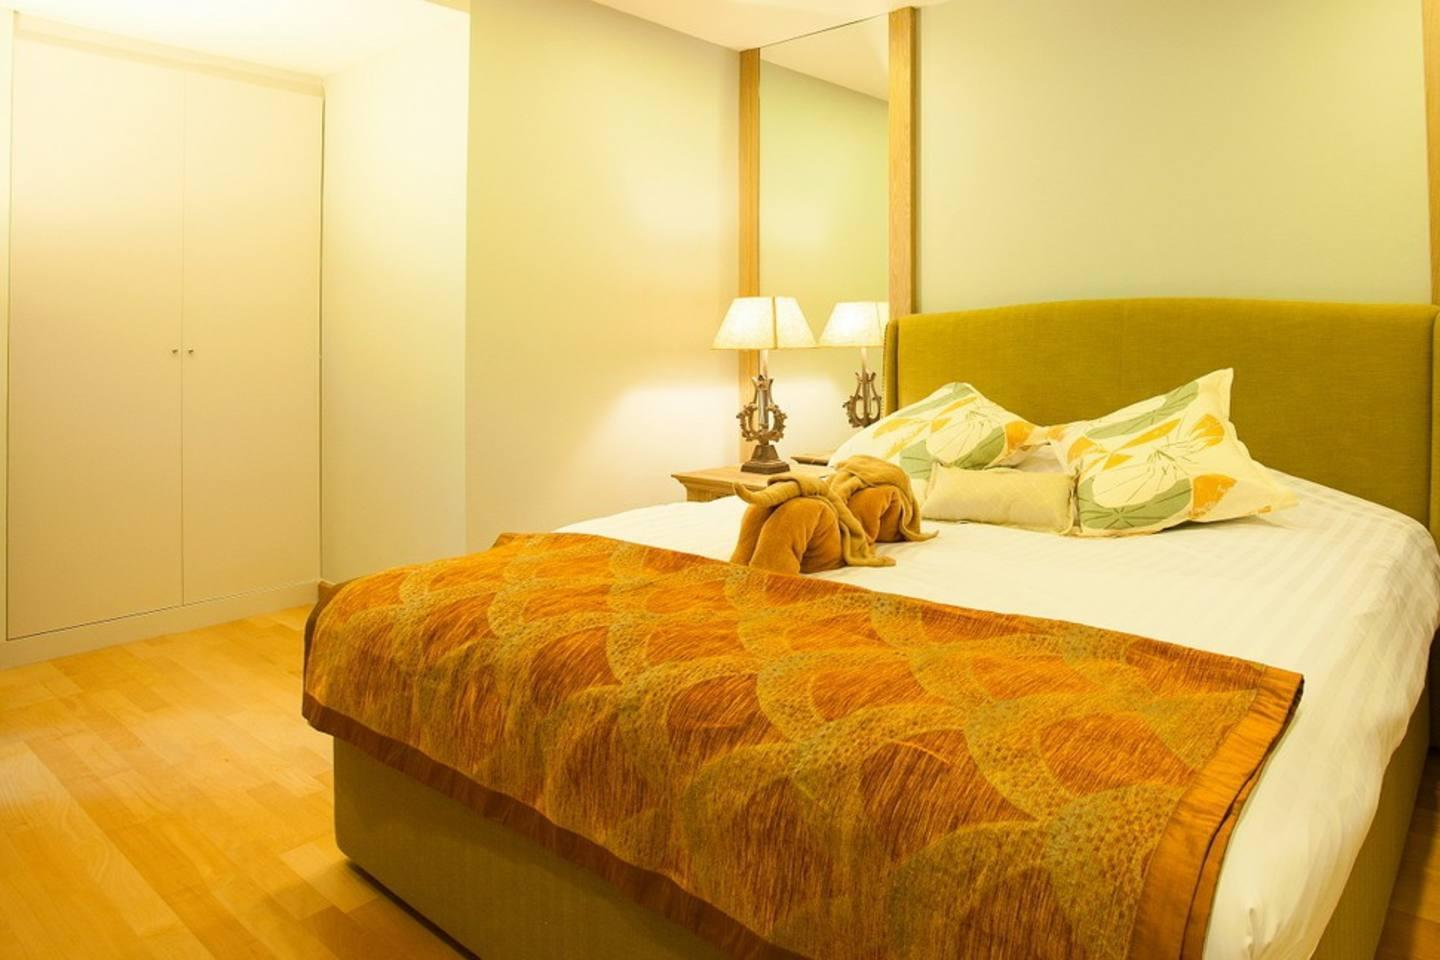 1 Bedroom Deluxe With SofaBed@RoccoHuaHin Condo 4J